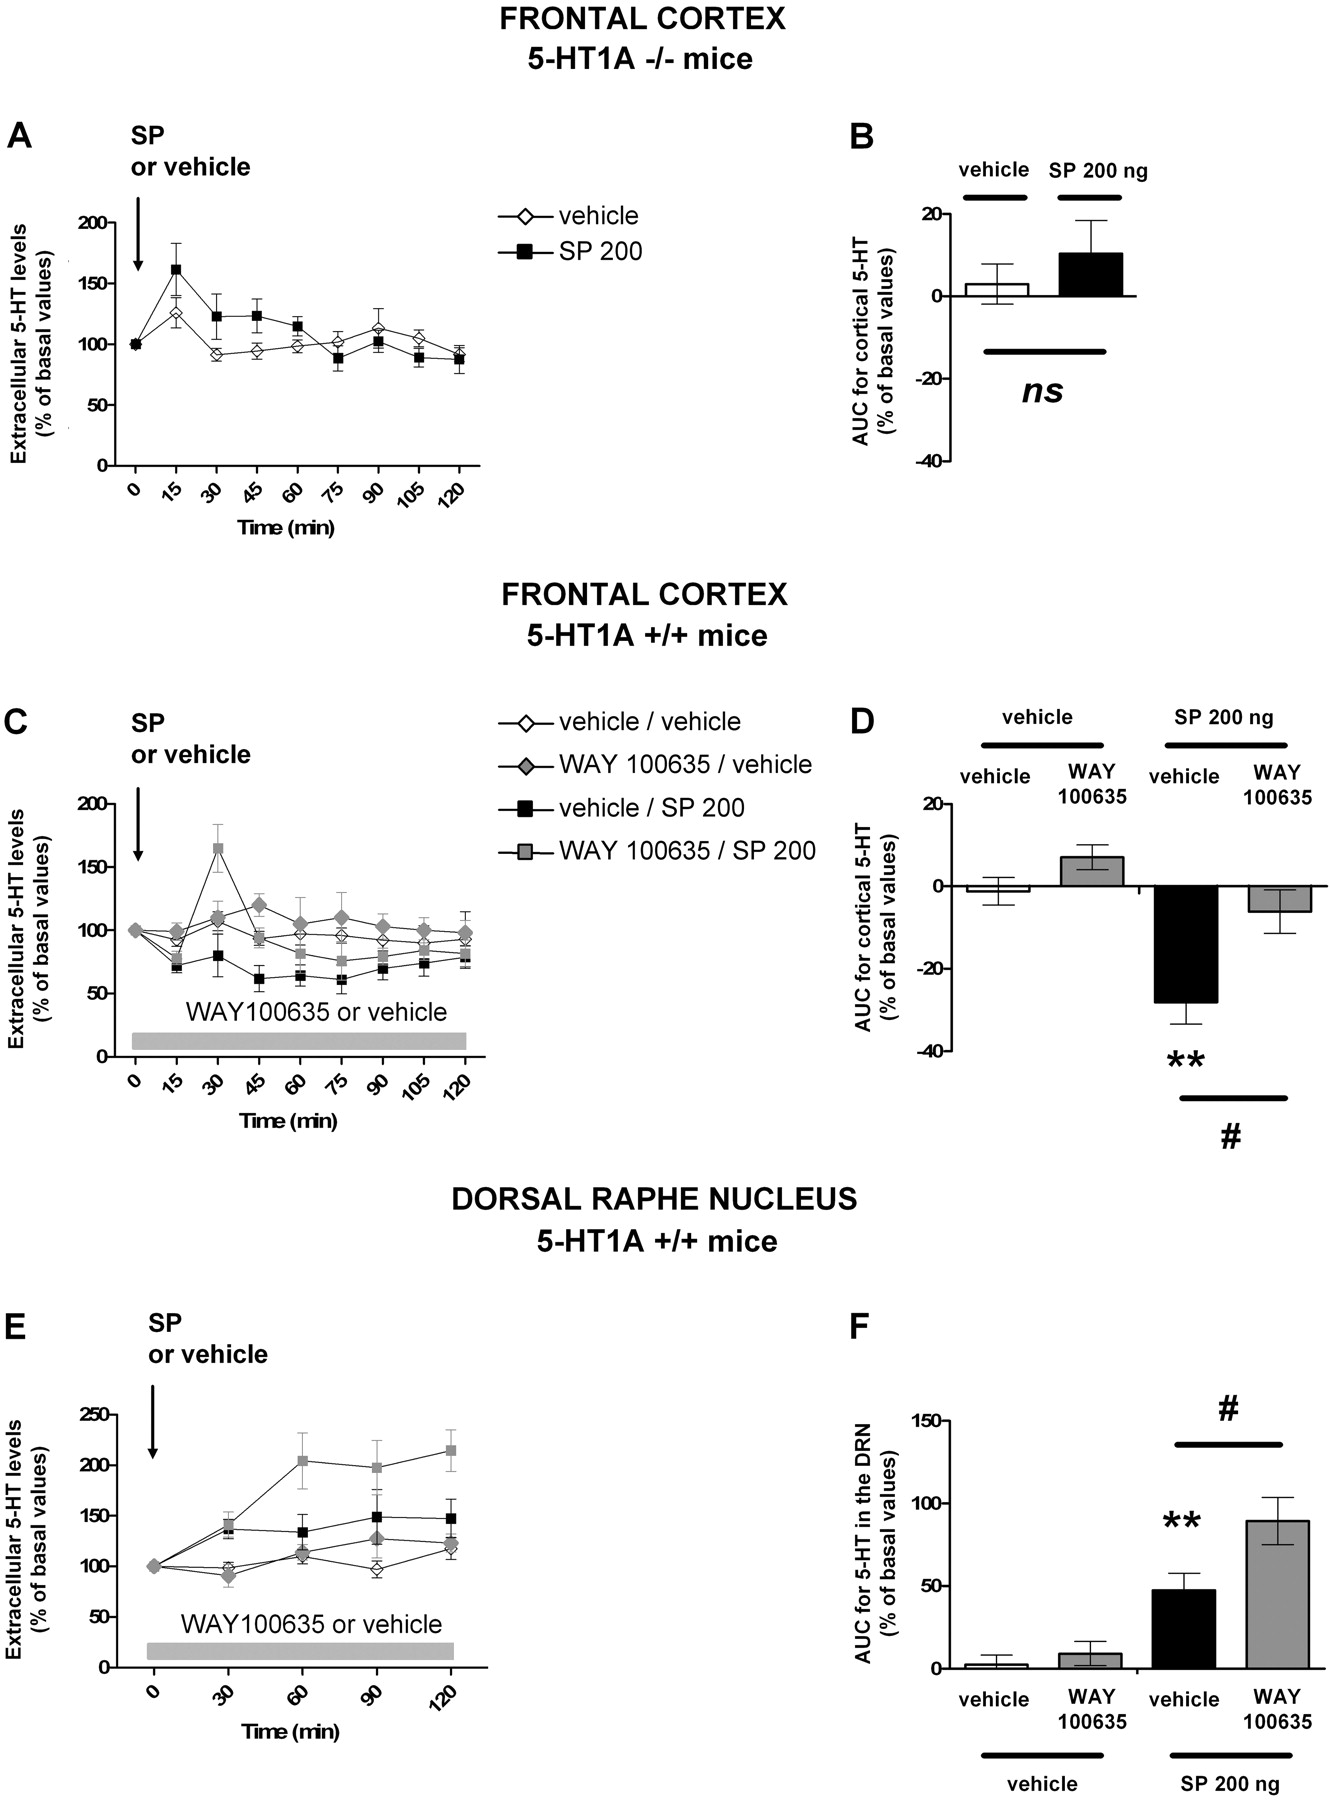 Substance P Neurokinin 1 Receptor Activation Within The Dorsal Raphe Nucleus Controls Serotonin